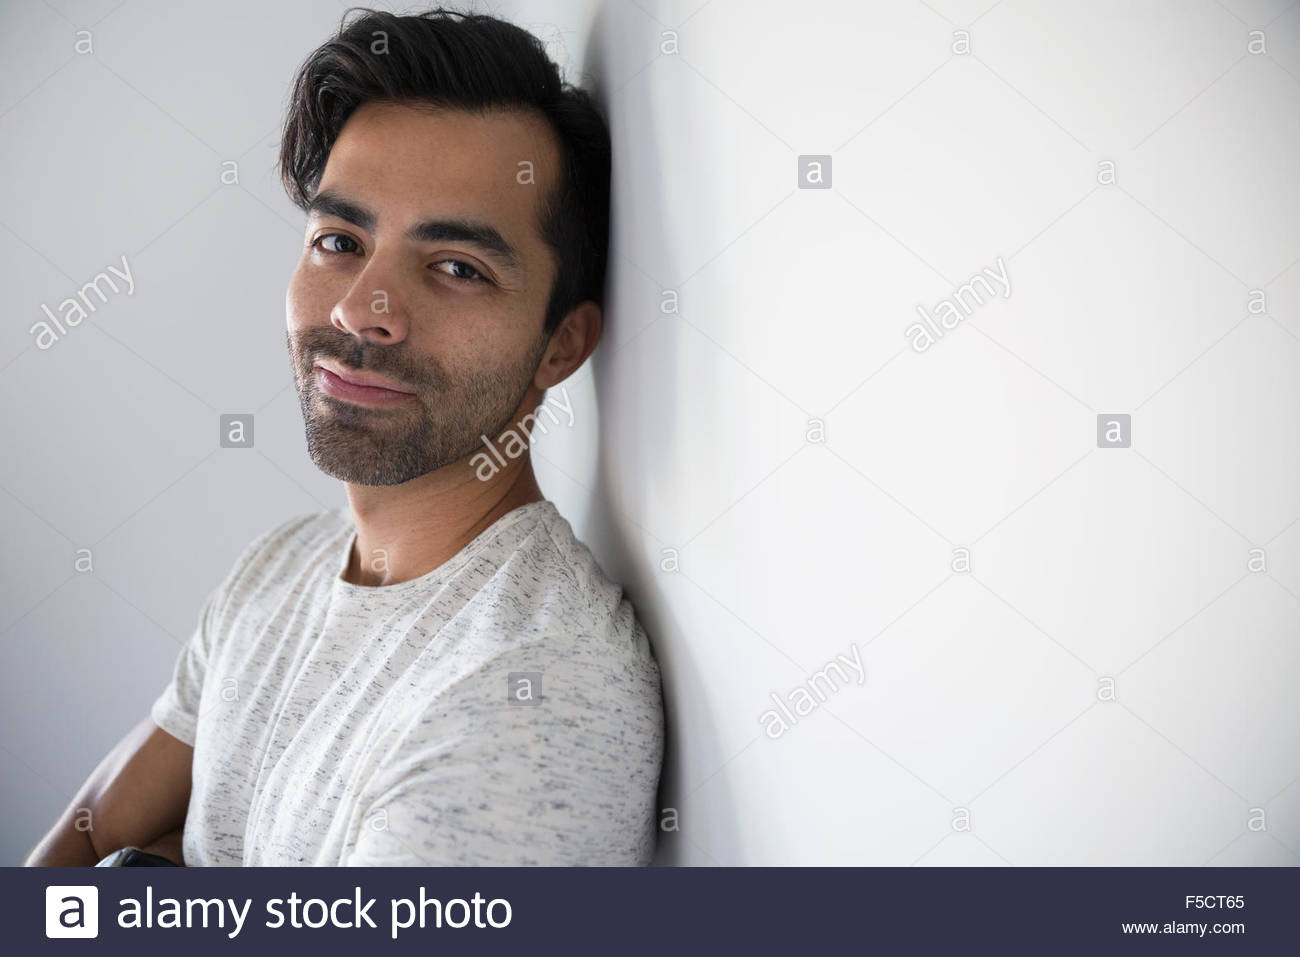 Portrait smiling man with black hair and stubble - Stock Image